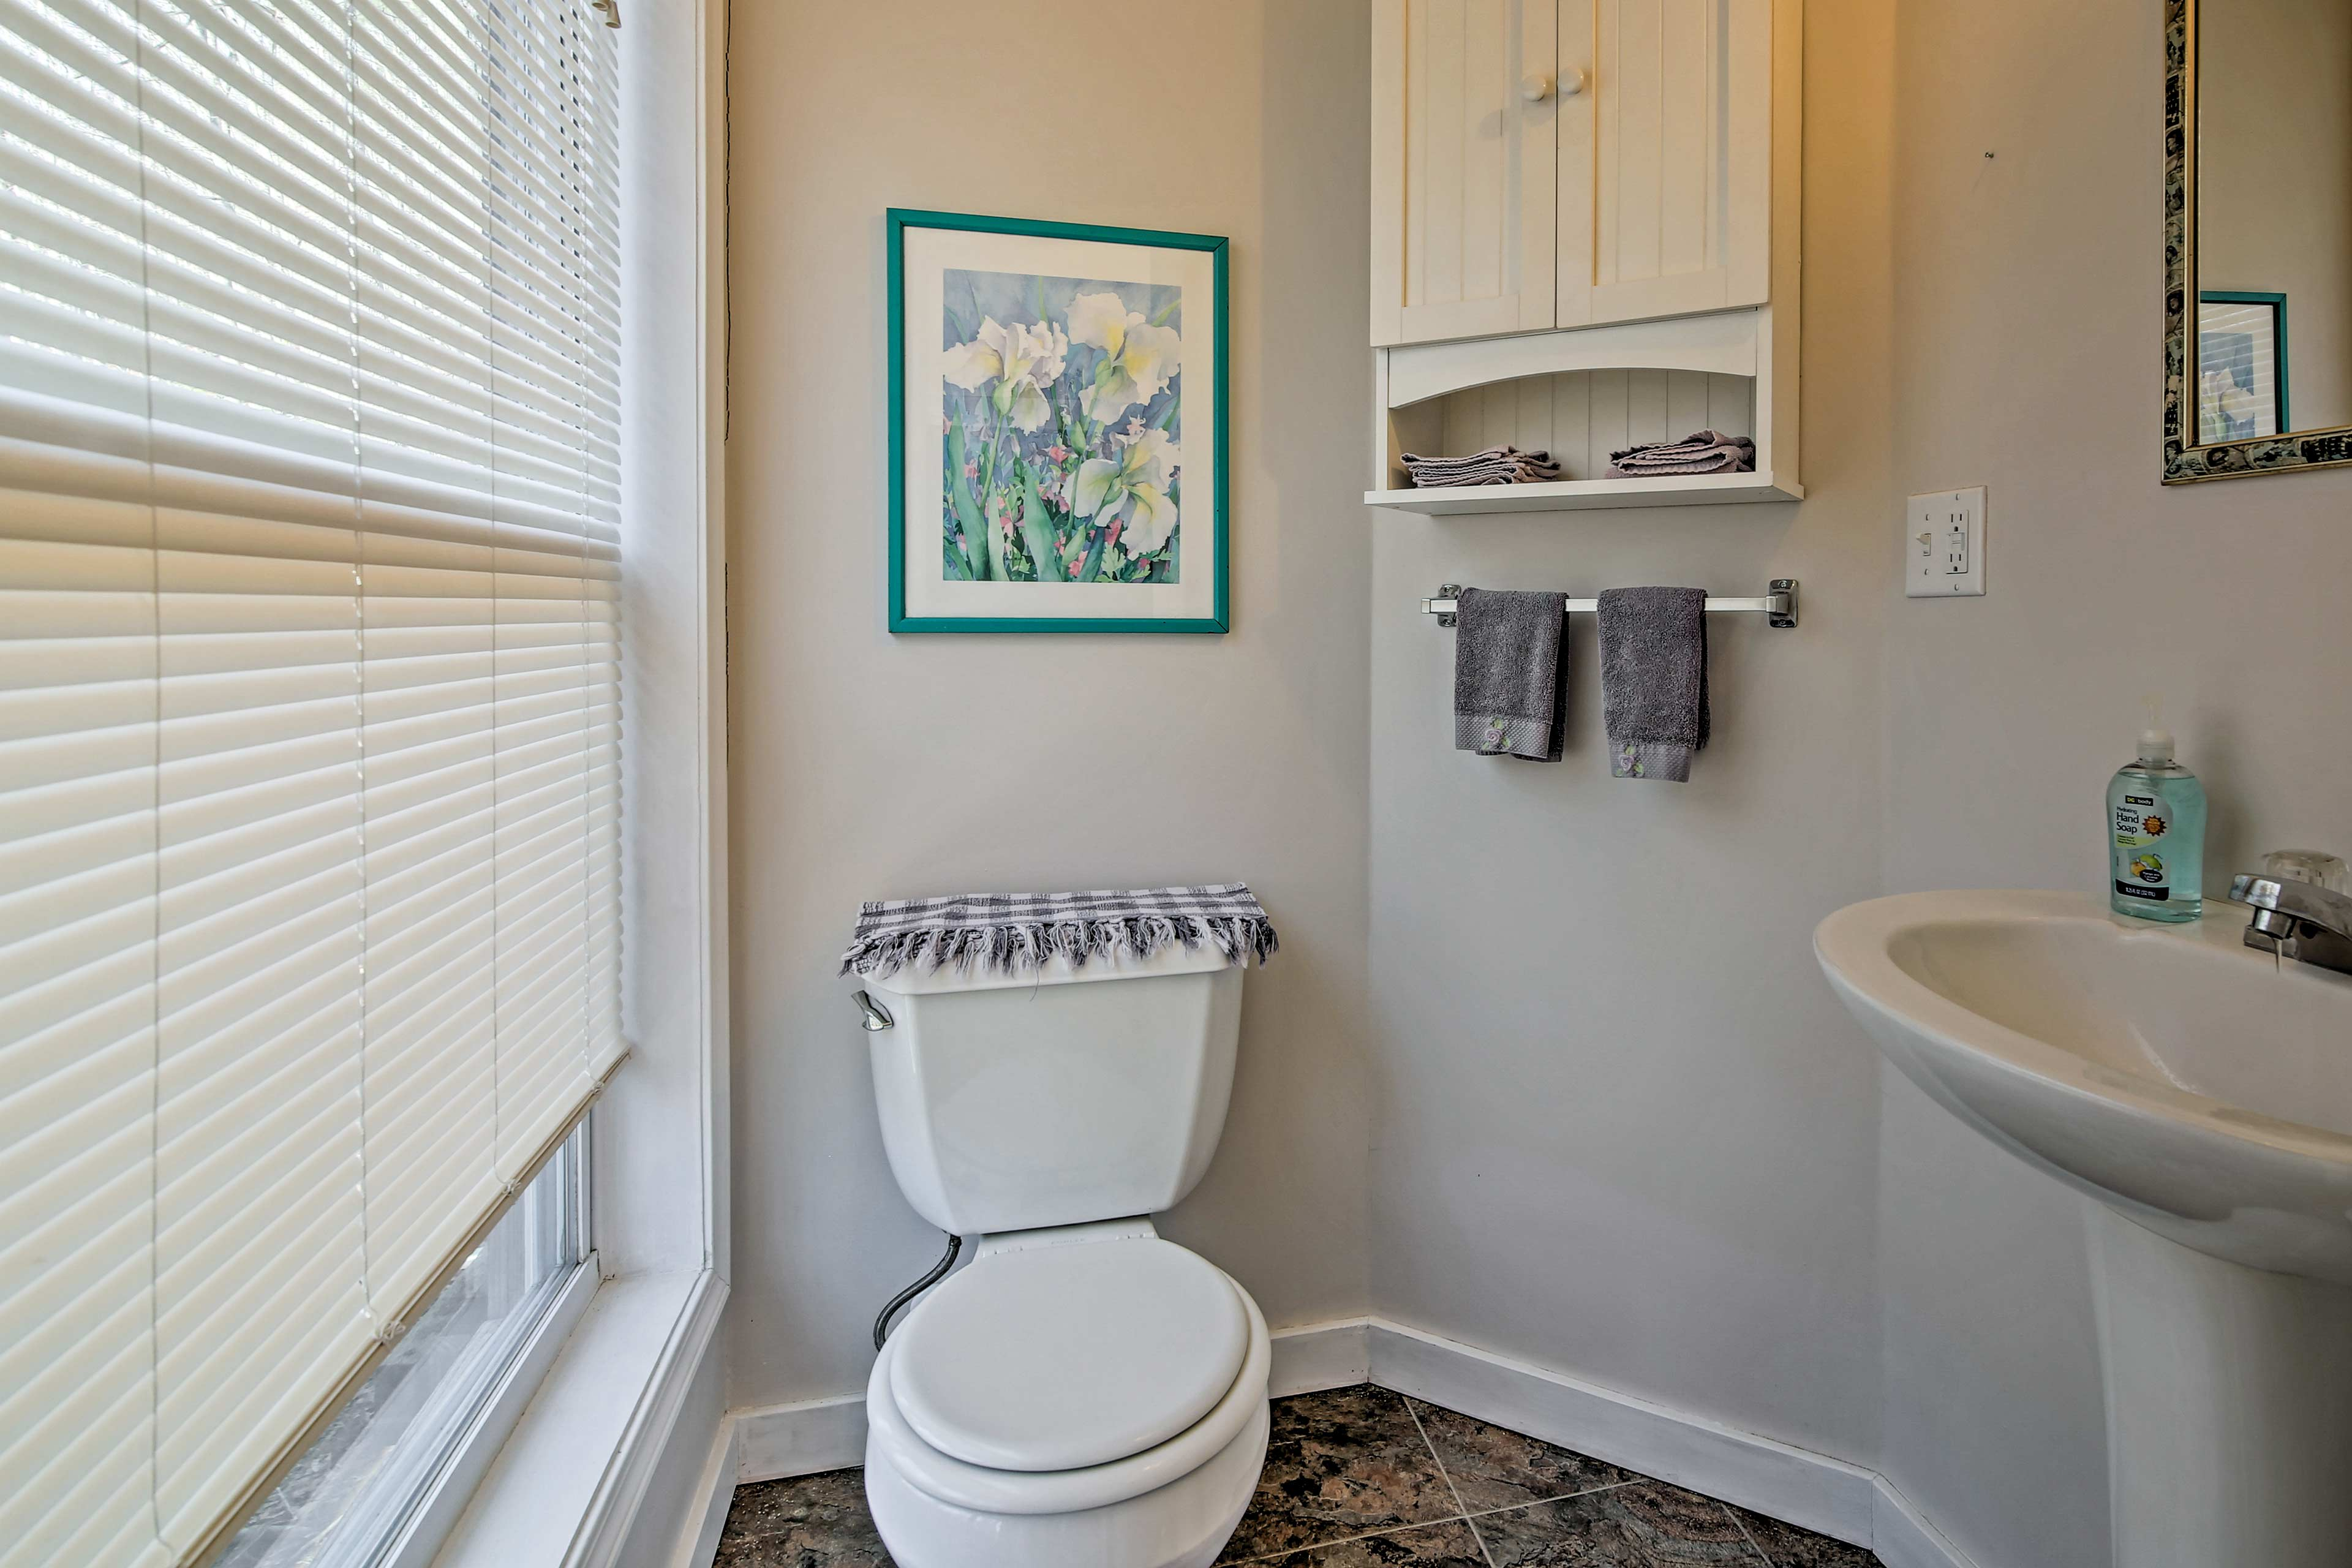 The home offers 1.5 bathrooms for guests to use.